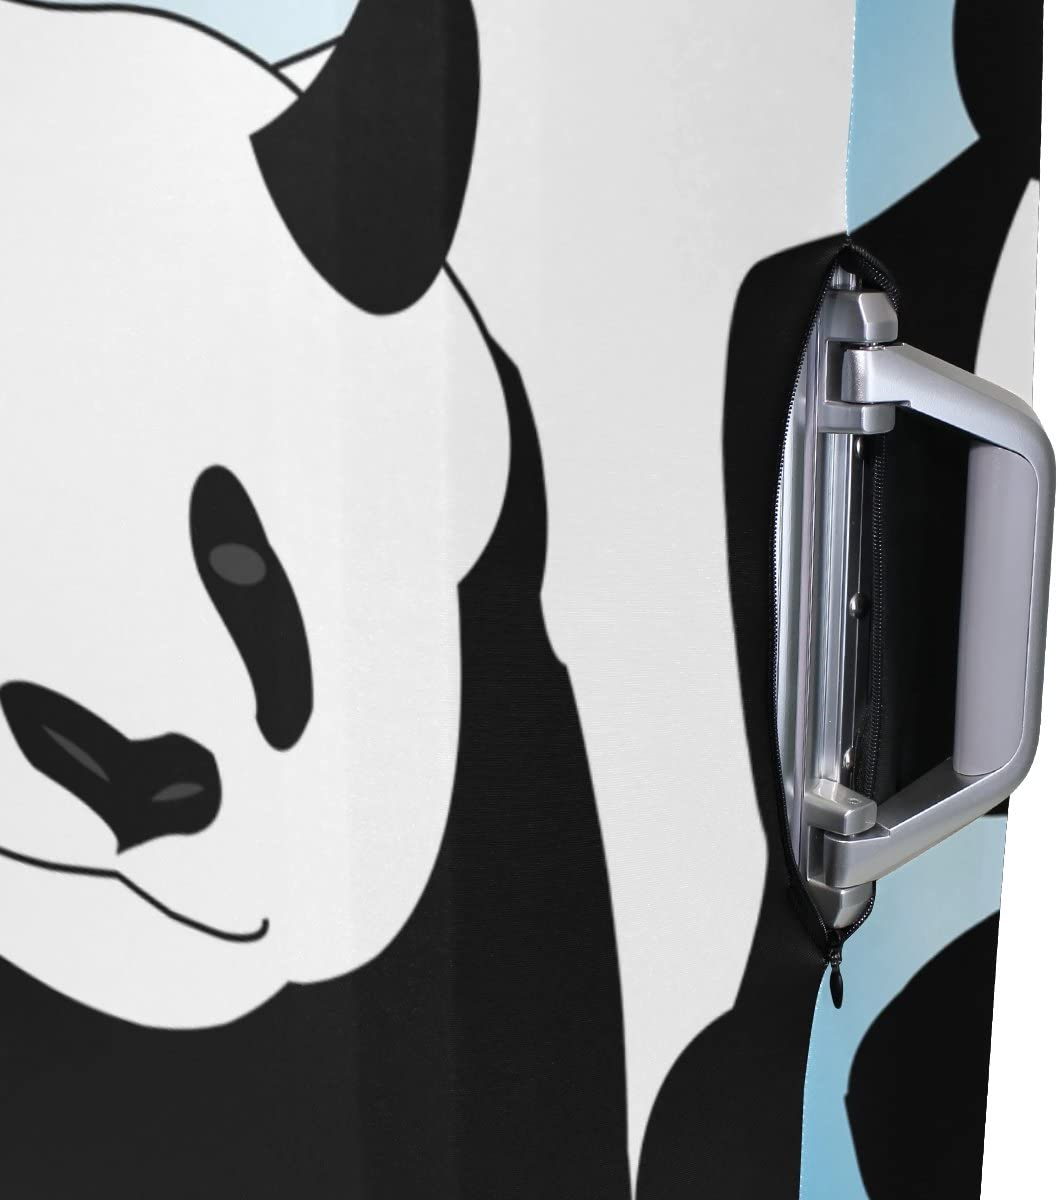 LEISISI Very Cute Panda Luggage Cover Elastic Protector Fits XL 29-32 in Suitcase